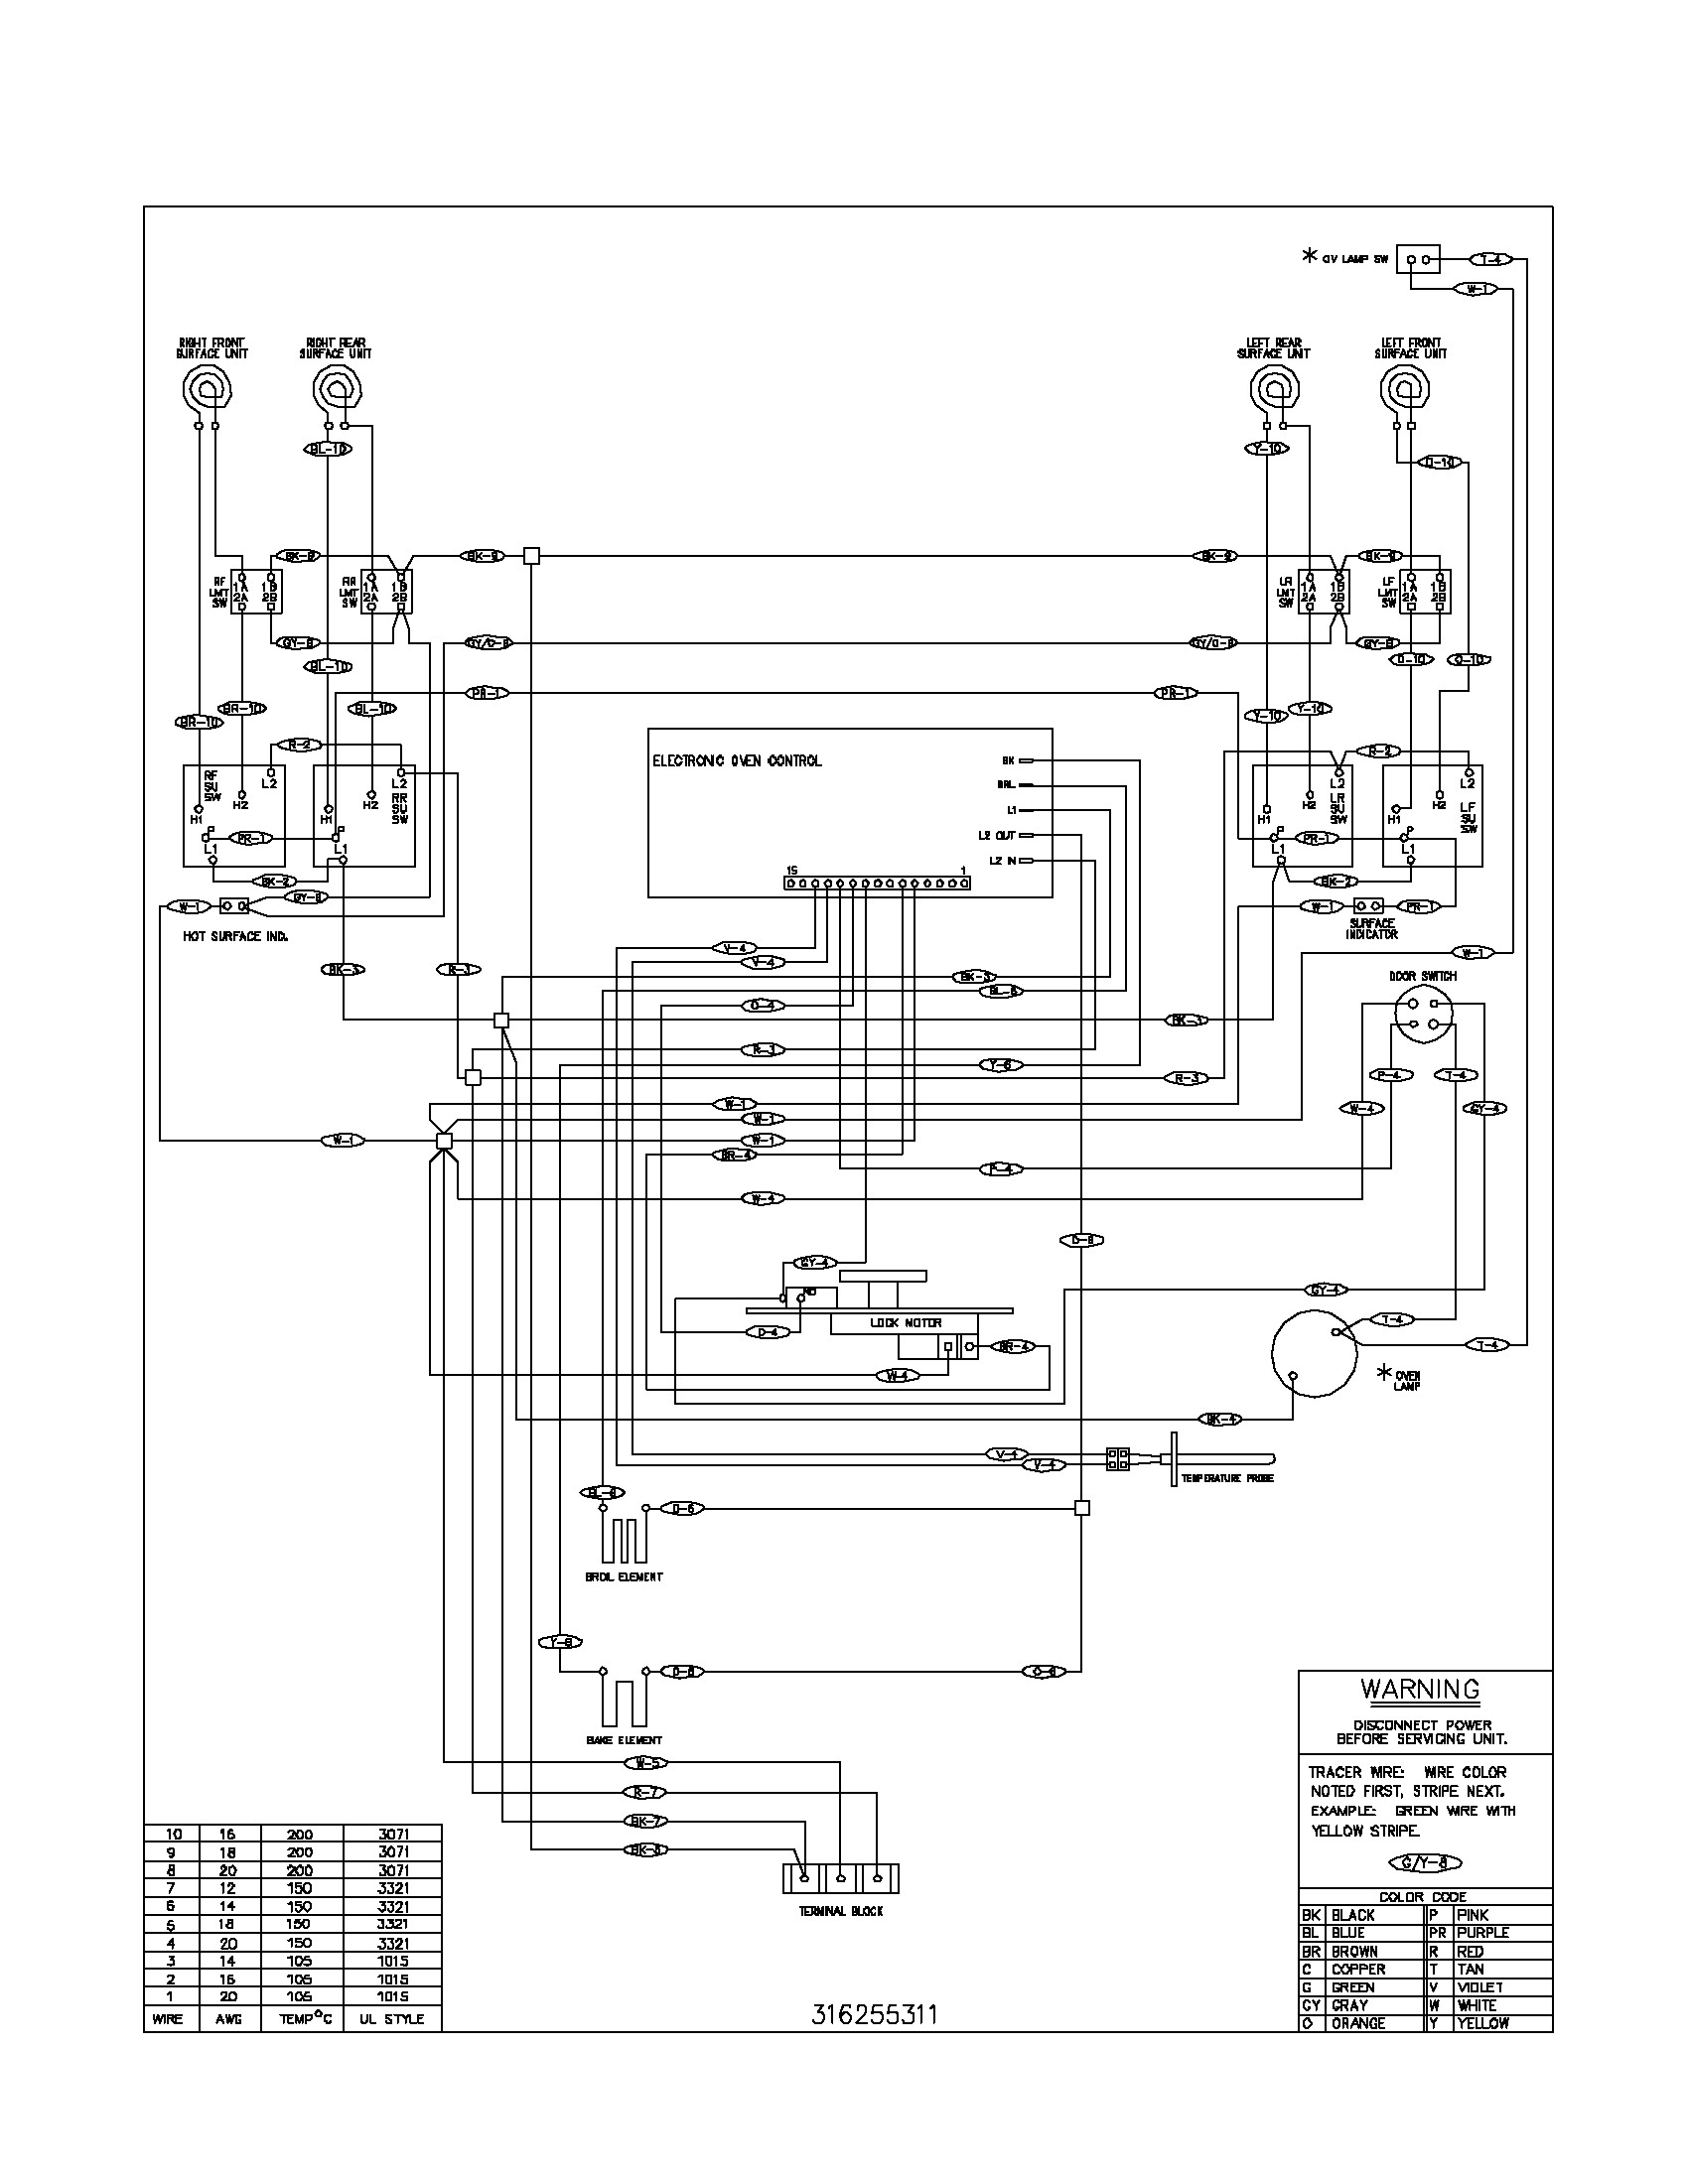 frigidaire electric range wiring diagram Collection-Electric Current Diagram Inspirational Frigidaire Stove Wiring 5-f